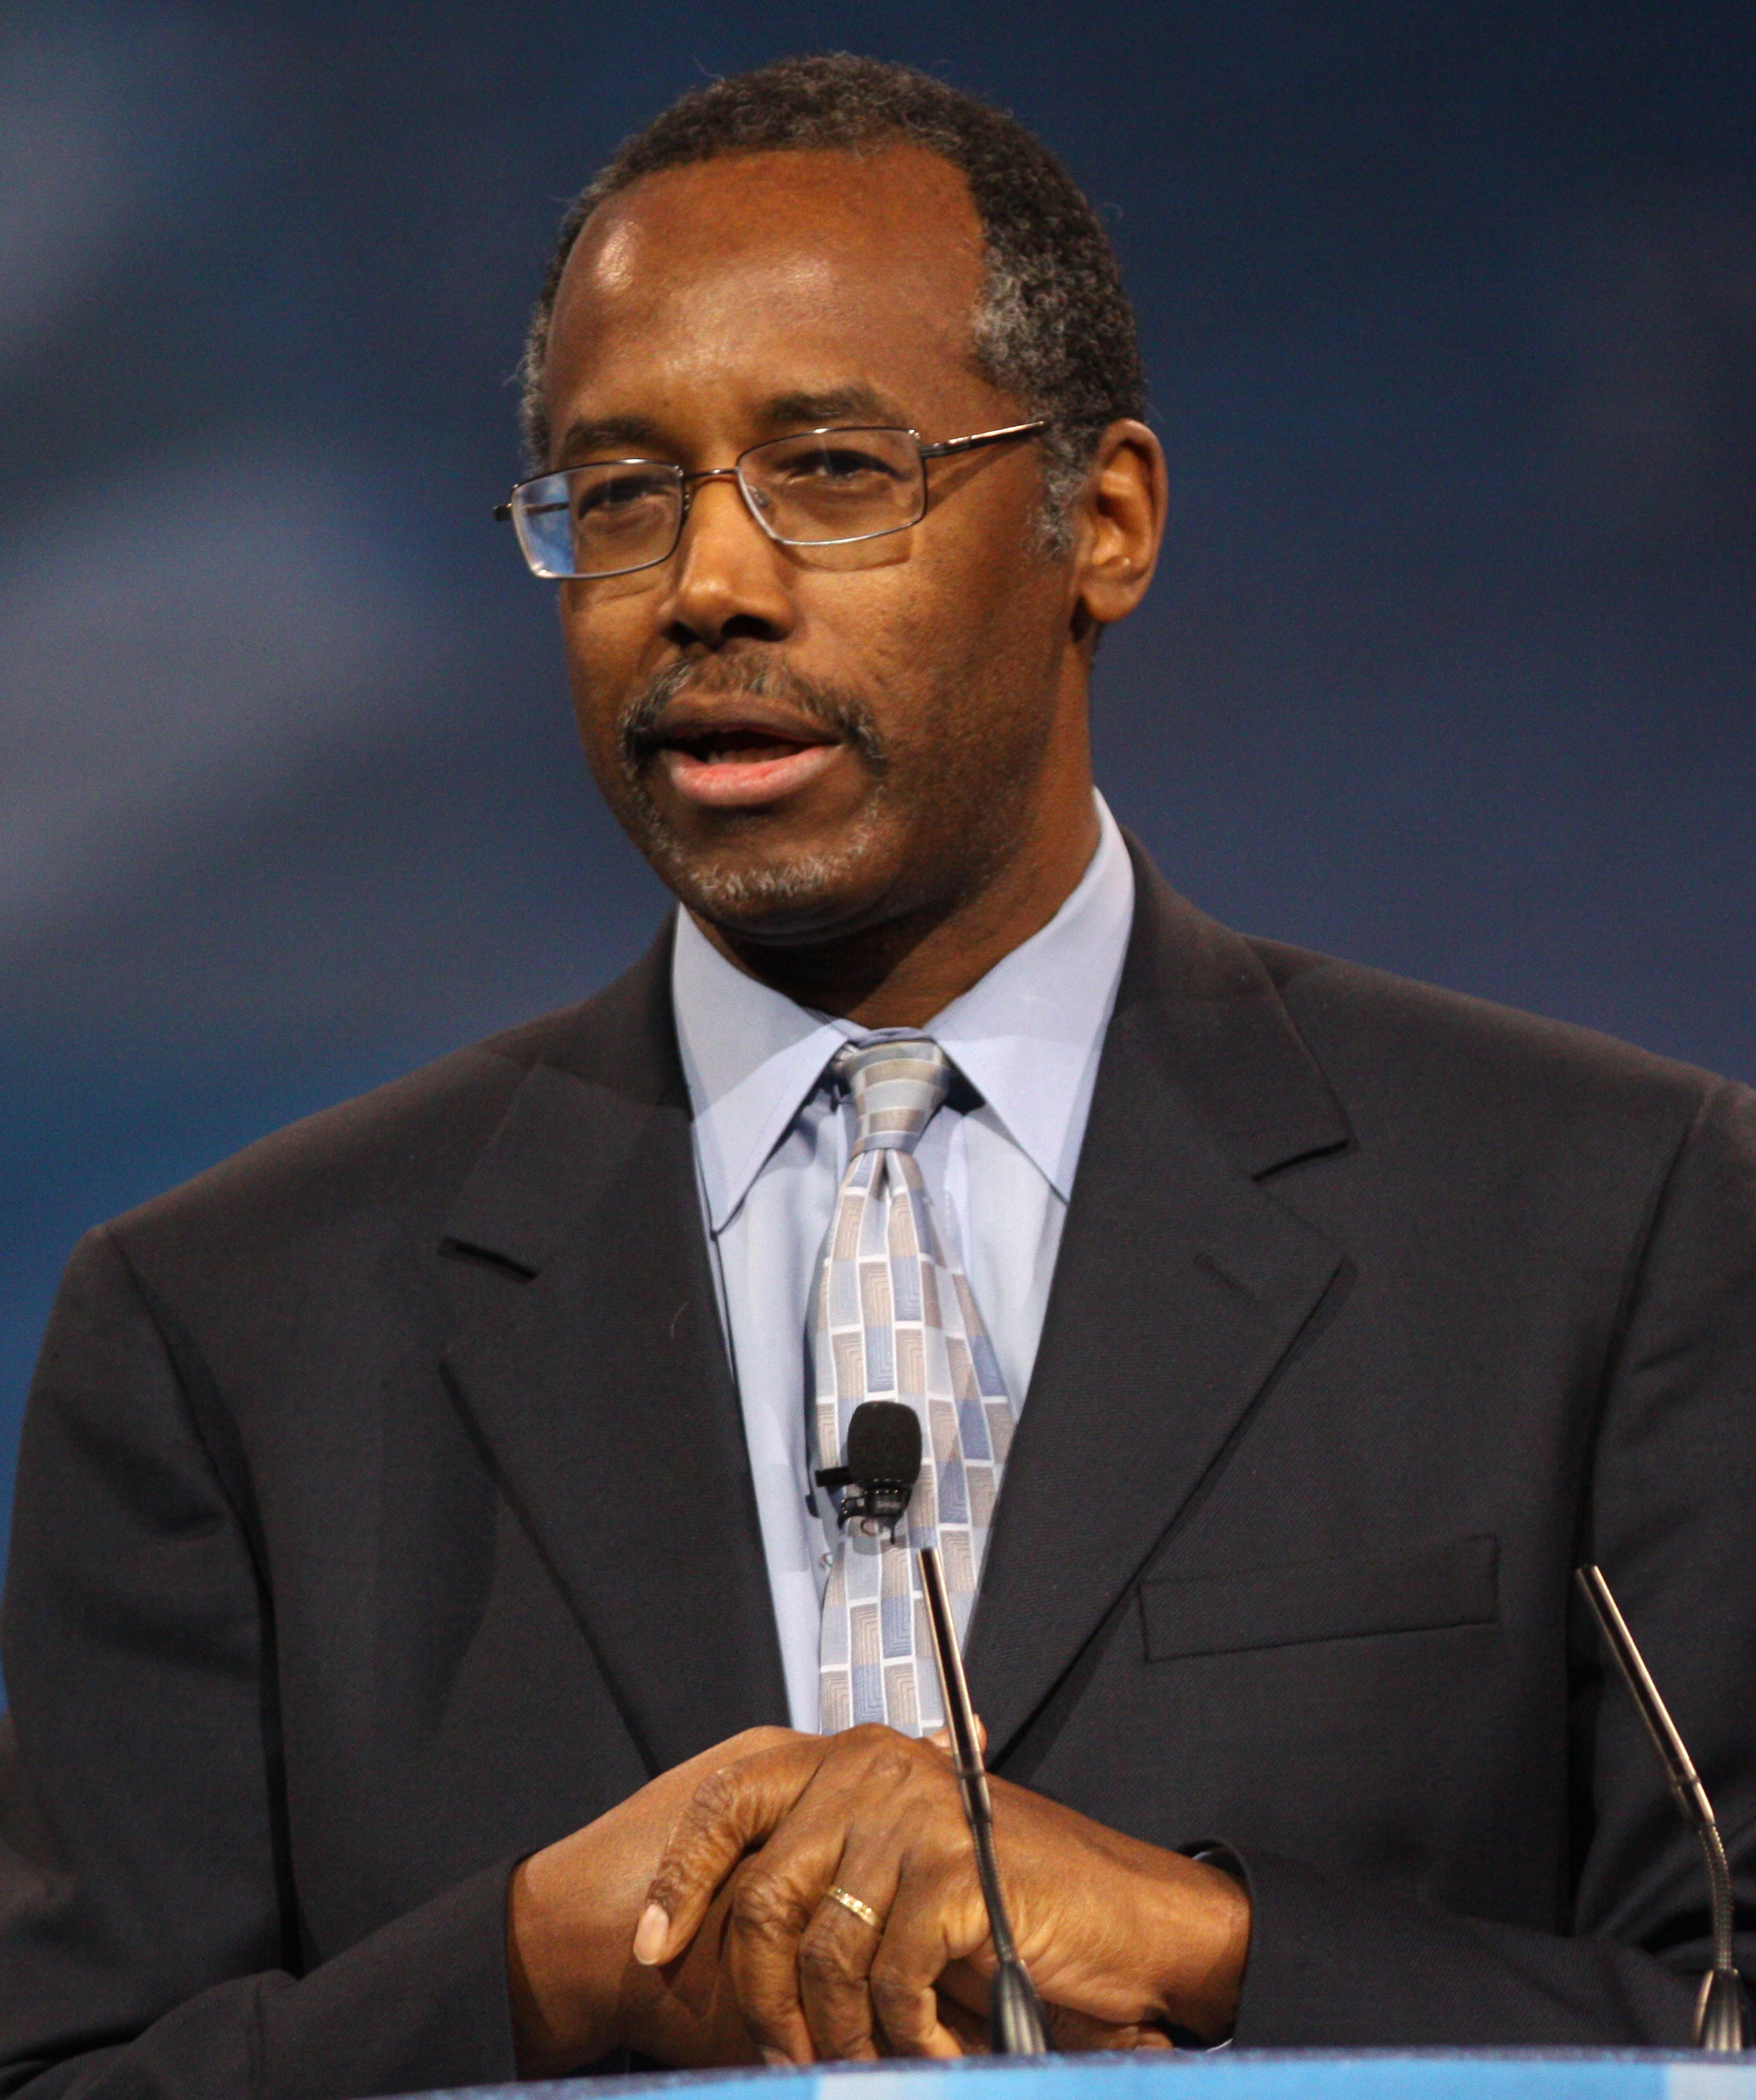 Help writing a research paper introduction paragraph on ben carson.?